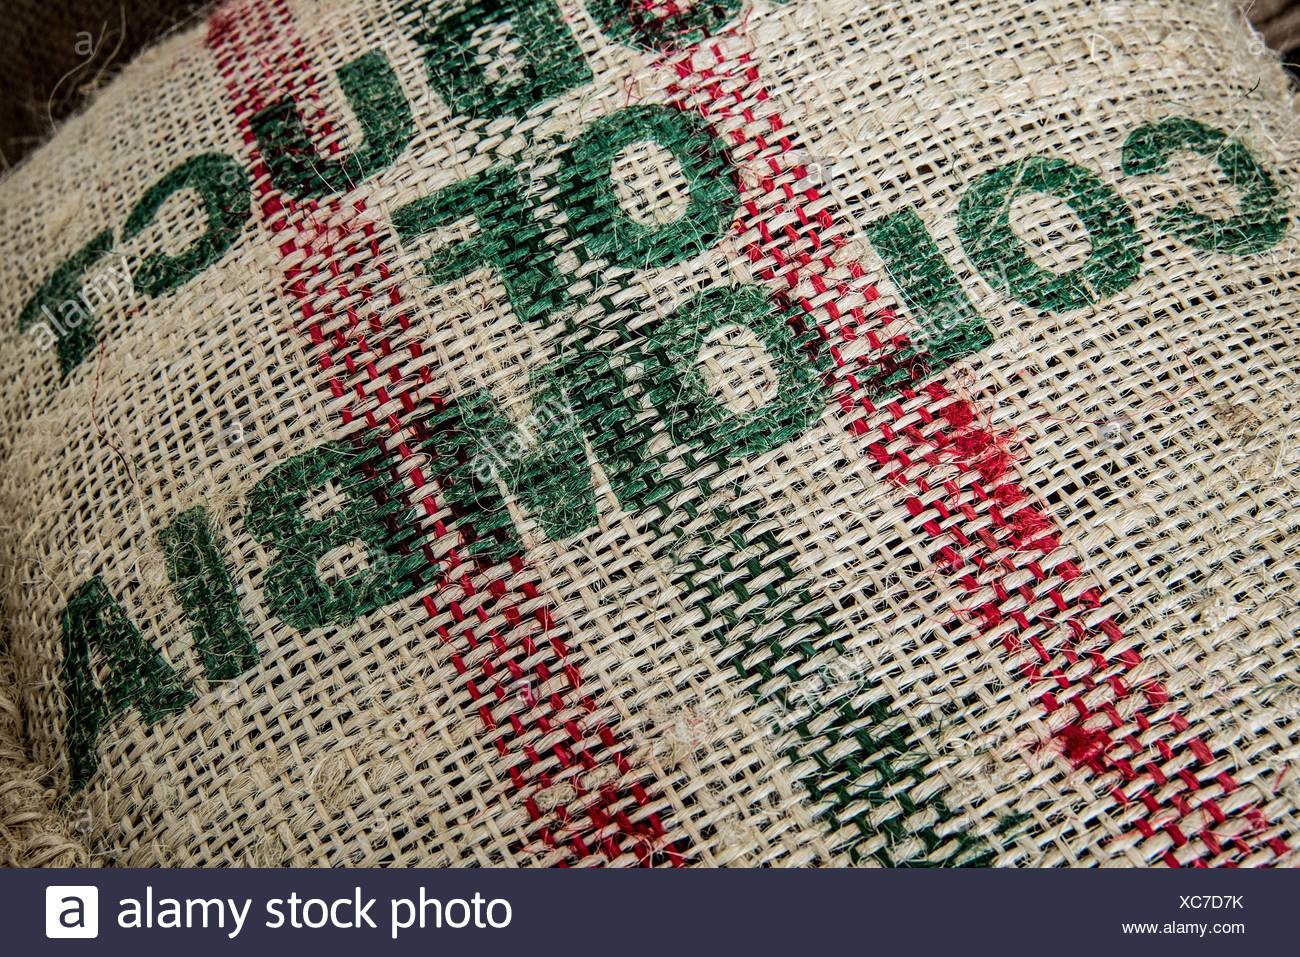 Sacks of coffee beans at a coffee importer's warehouse - Stock Image